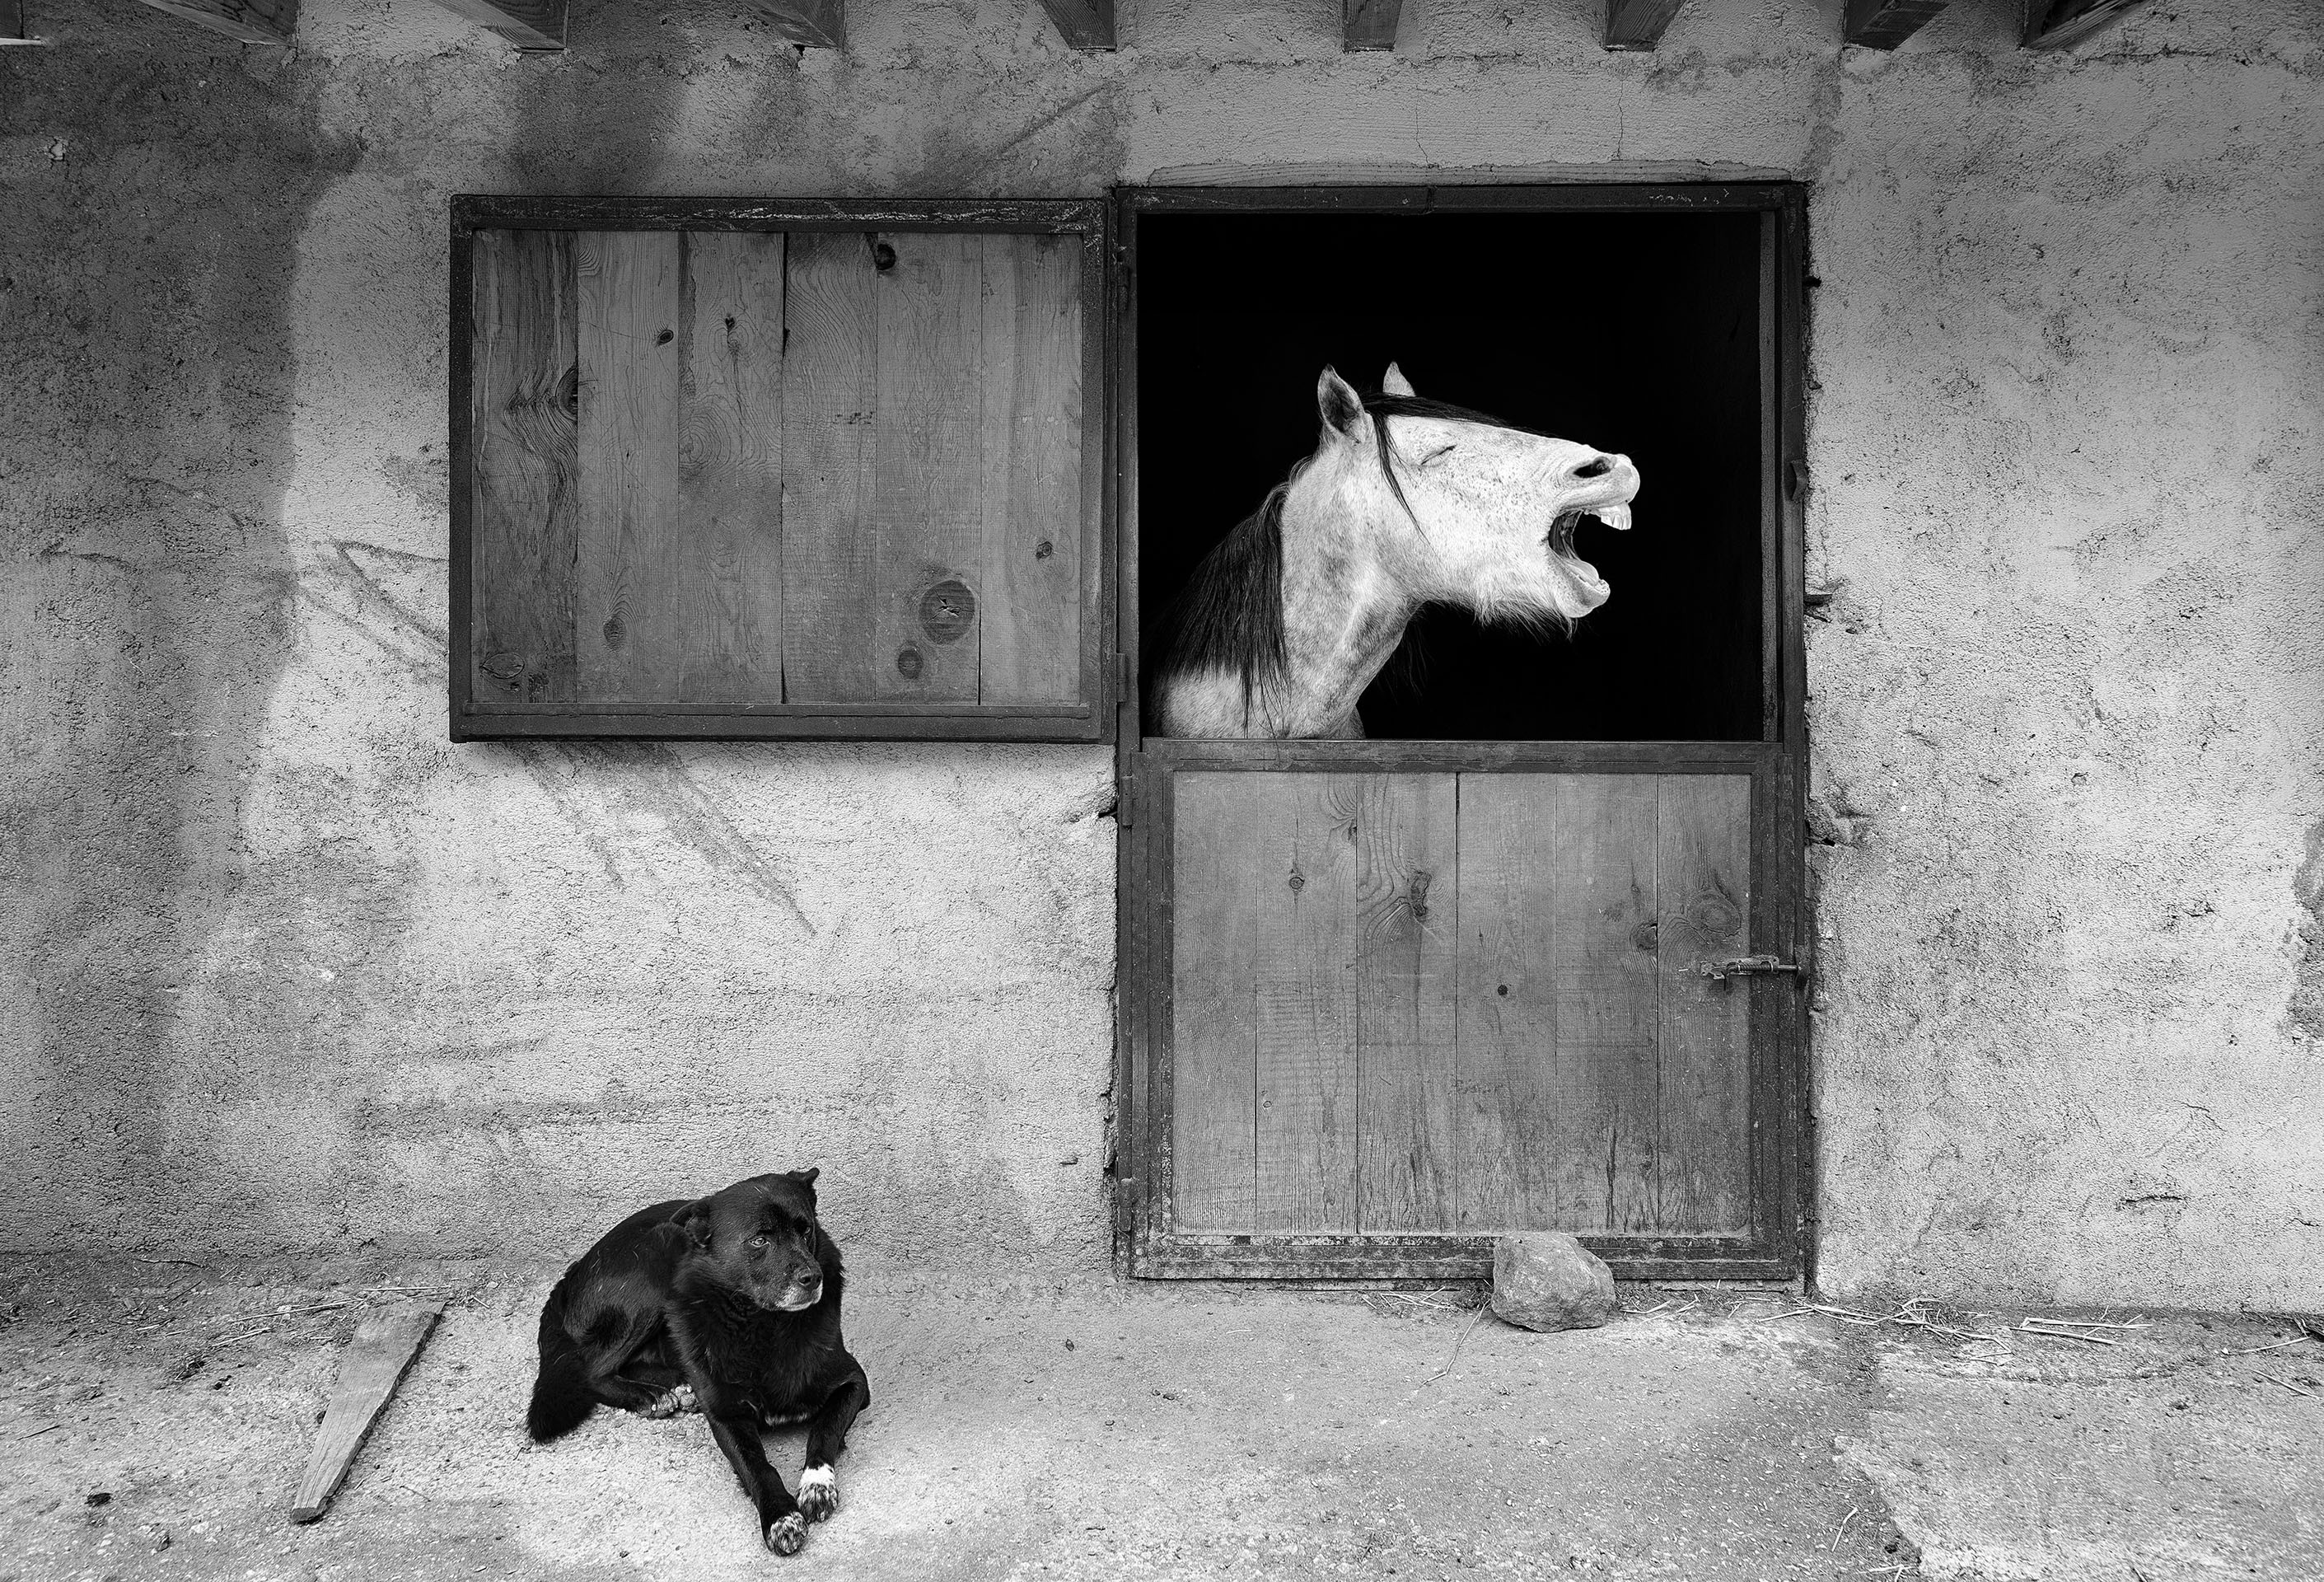 An older black dog and a white horse appear chilling out together, in black and white, the horse baring teeth in a big yawn